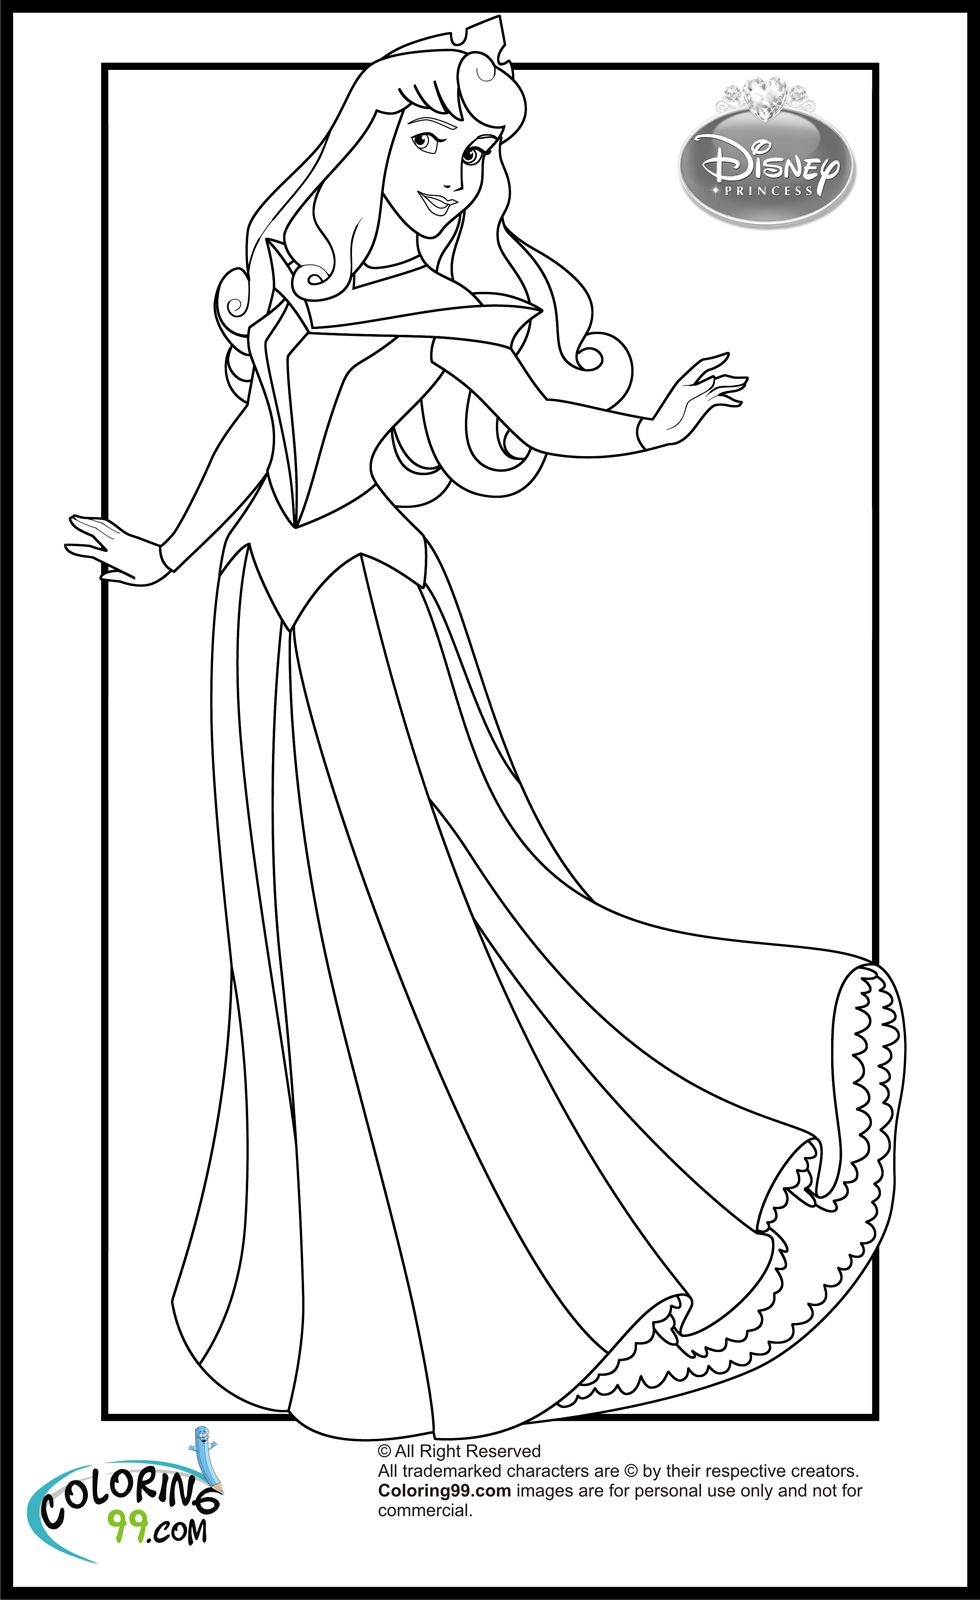 Sleeping Beauty Coloring Page Free For Girls  Kid Crafts  Fun